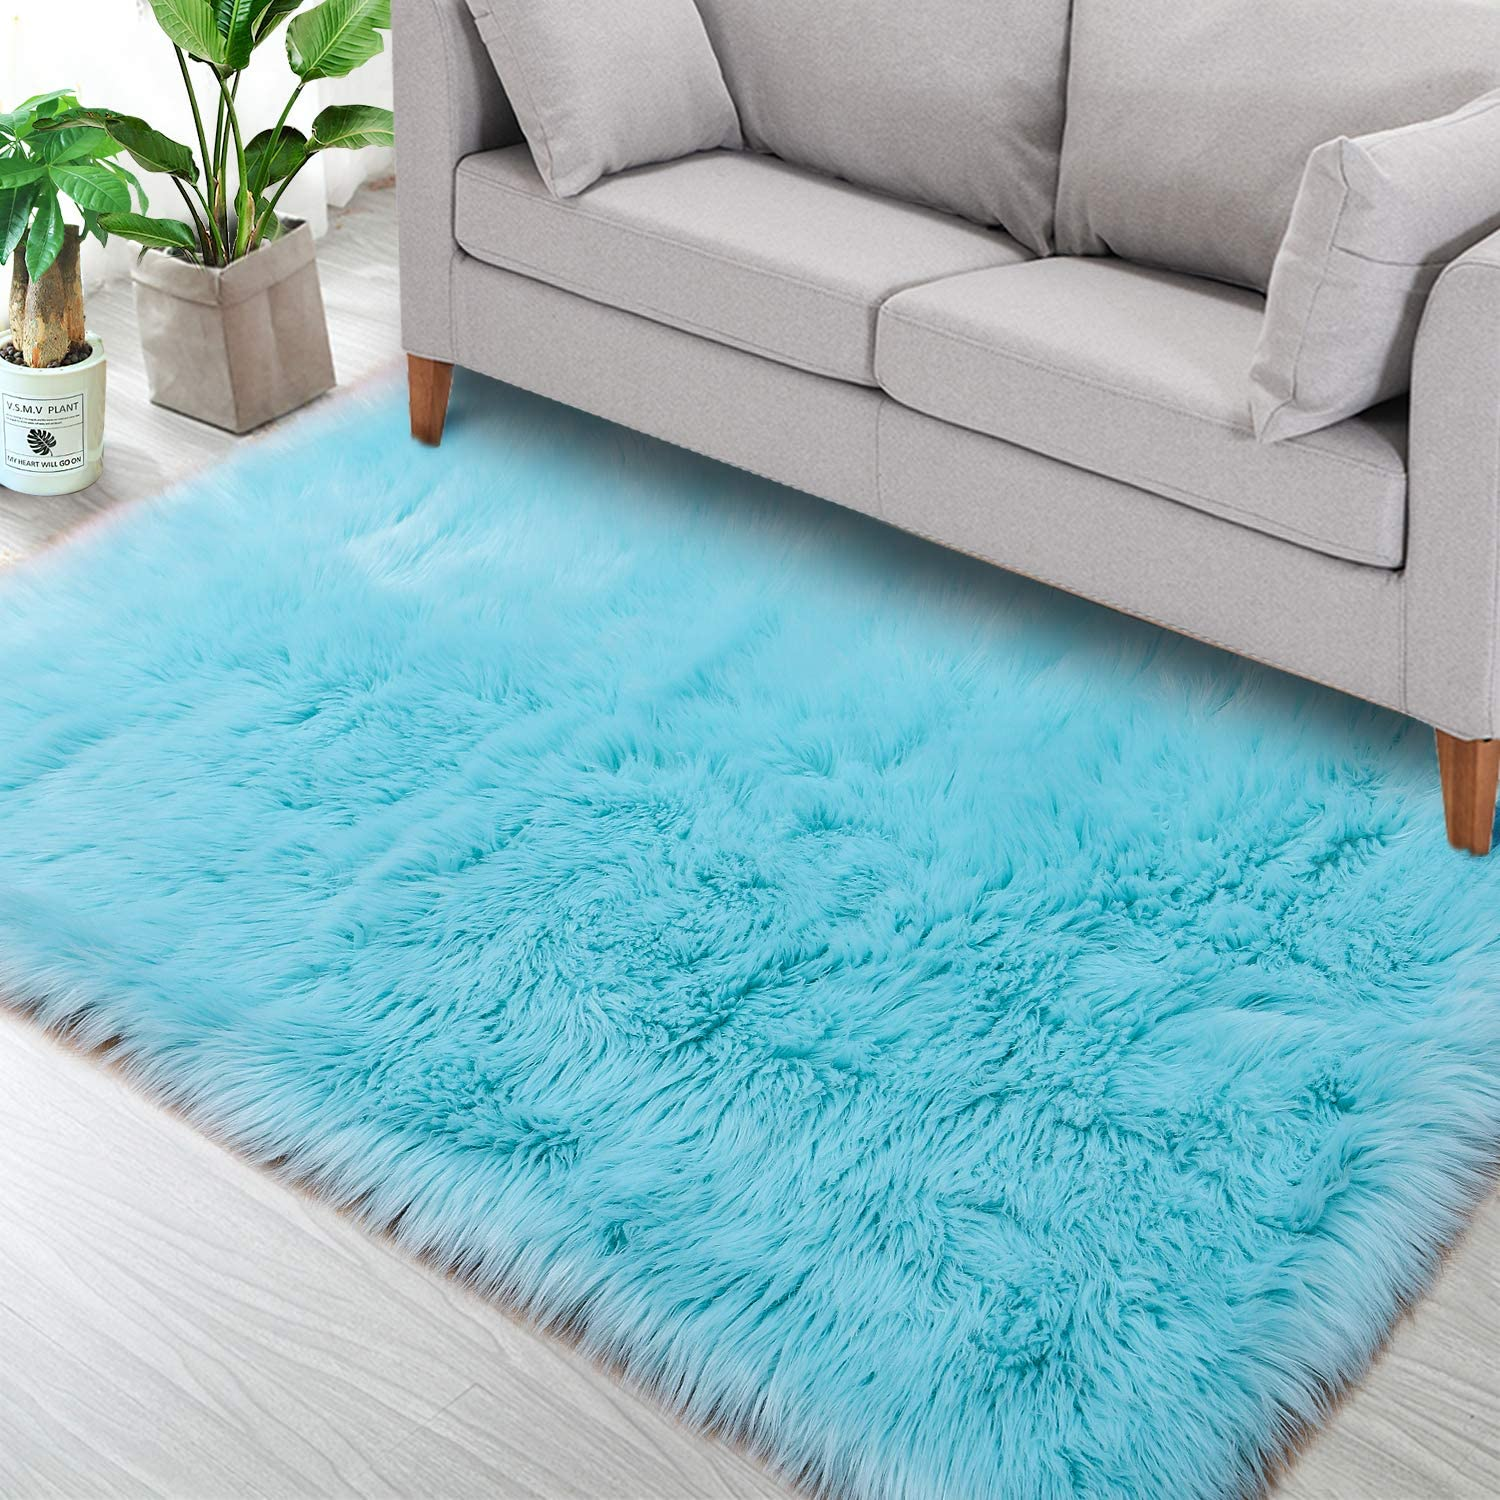 Noahas Luxury Fluffy Rugs Bedroom Furry Carpet Bedside Faux Fur Sheepskin Area Rugs Children Play Princess Room Decor Rug, 3ft x 5ft, Light Blue